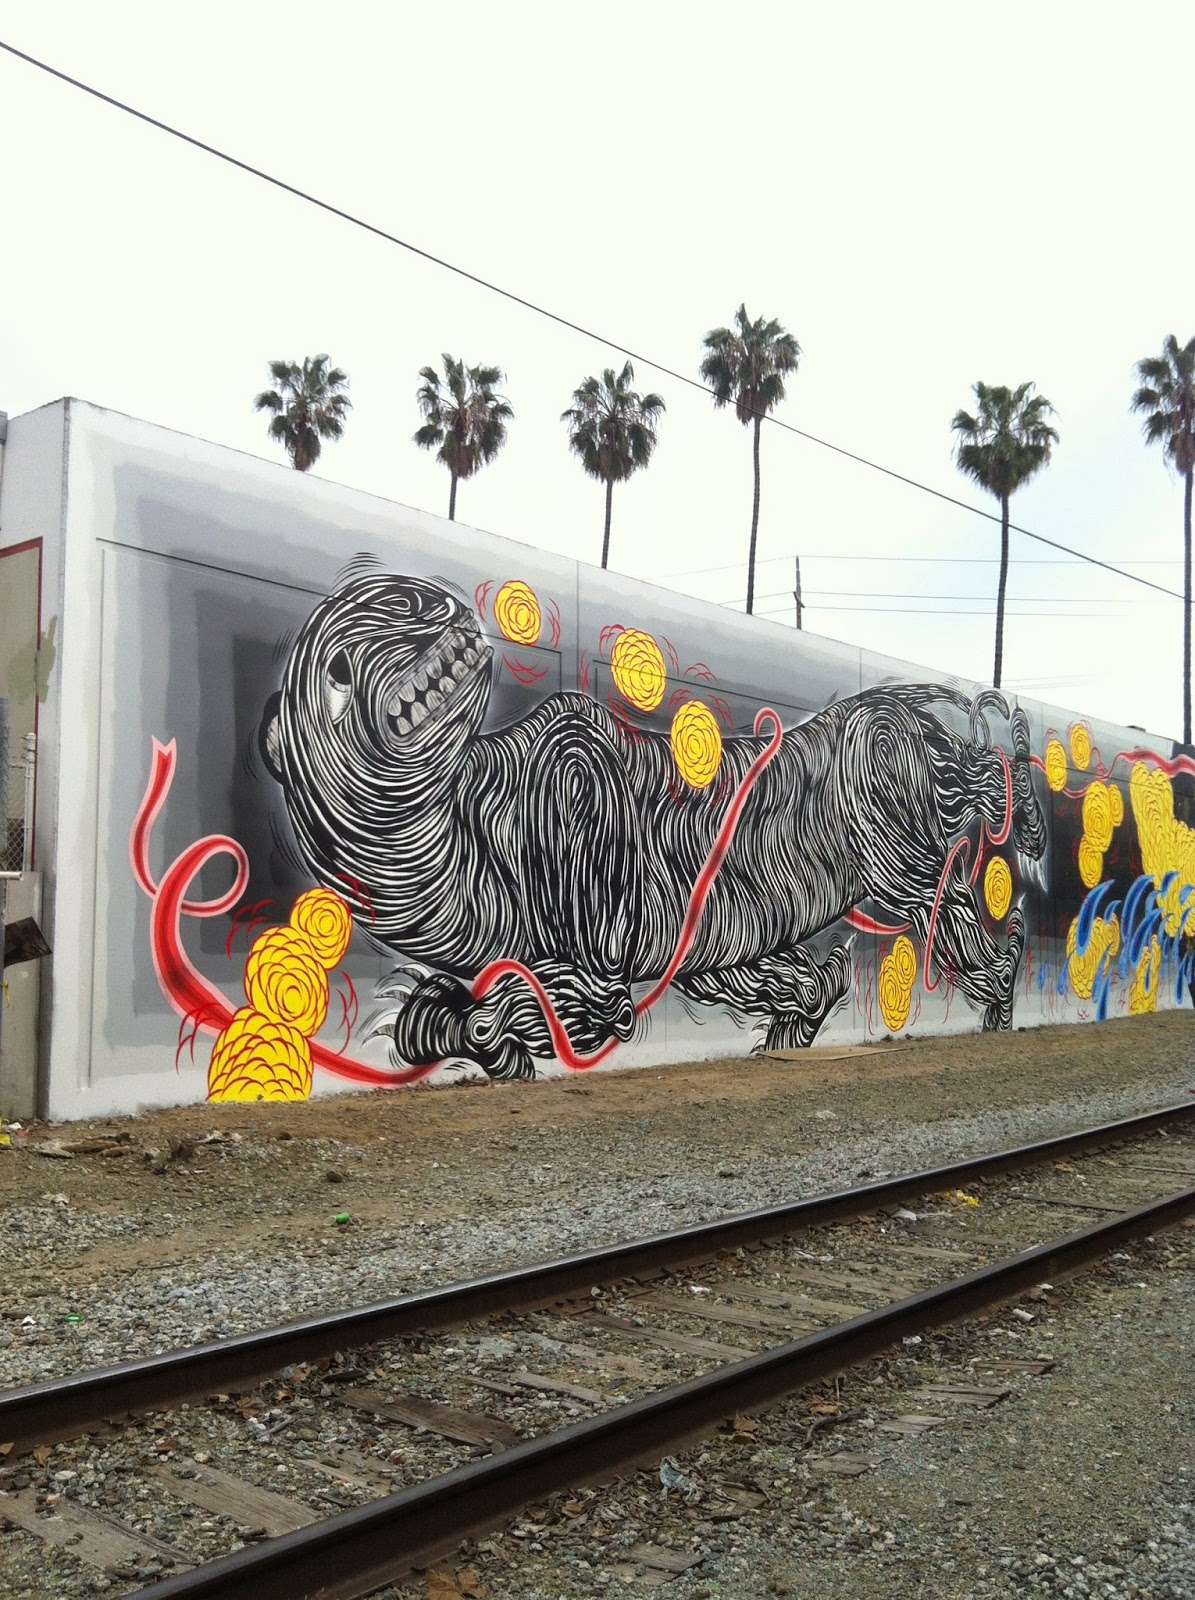 Andrew Schoultz is currently in Santa Fe, California where he just finished working on this beasty mural.